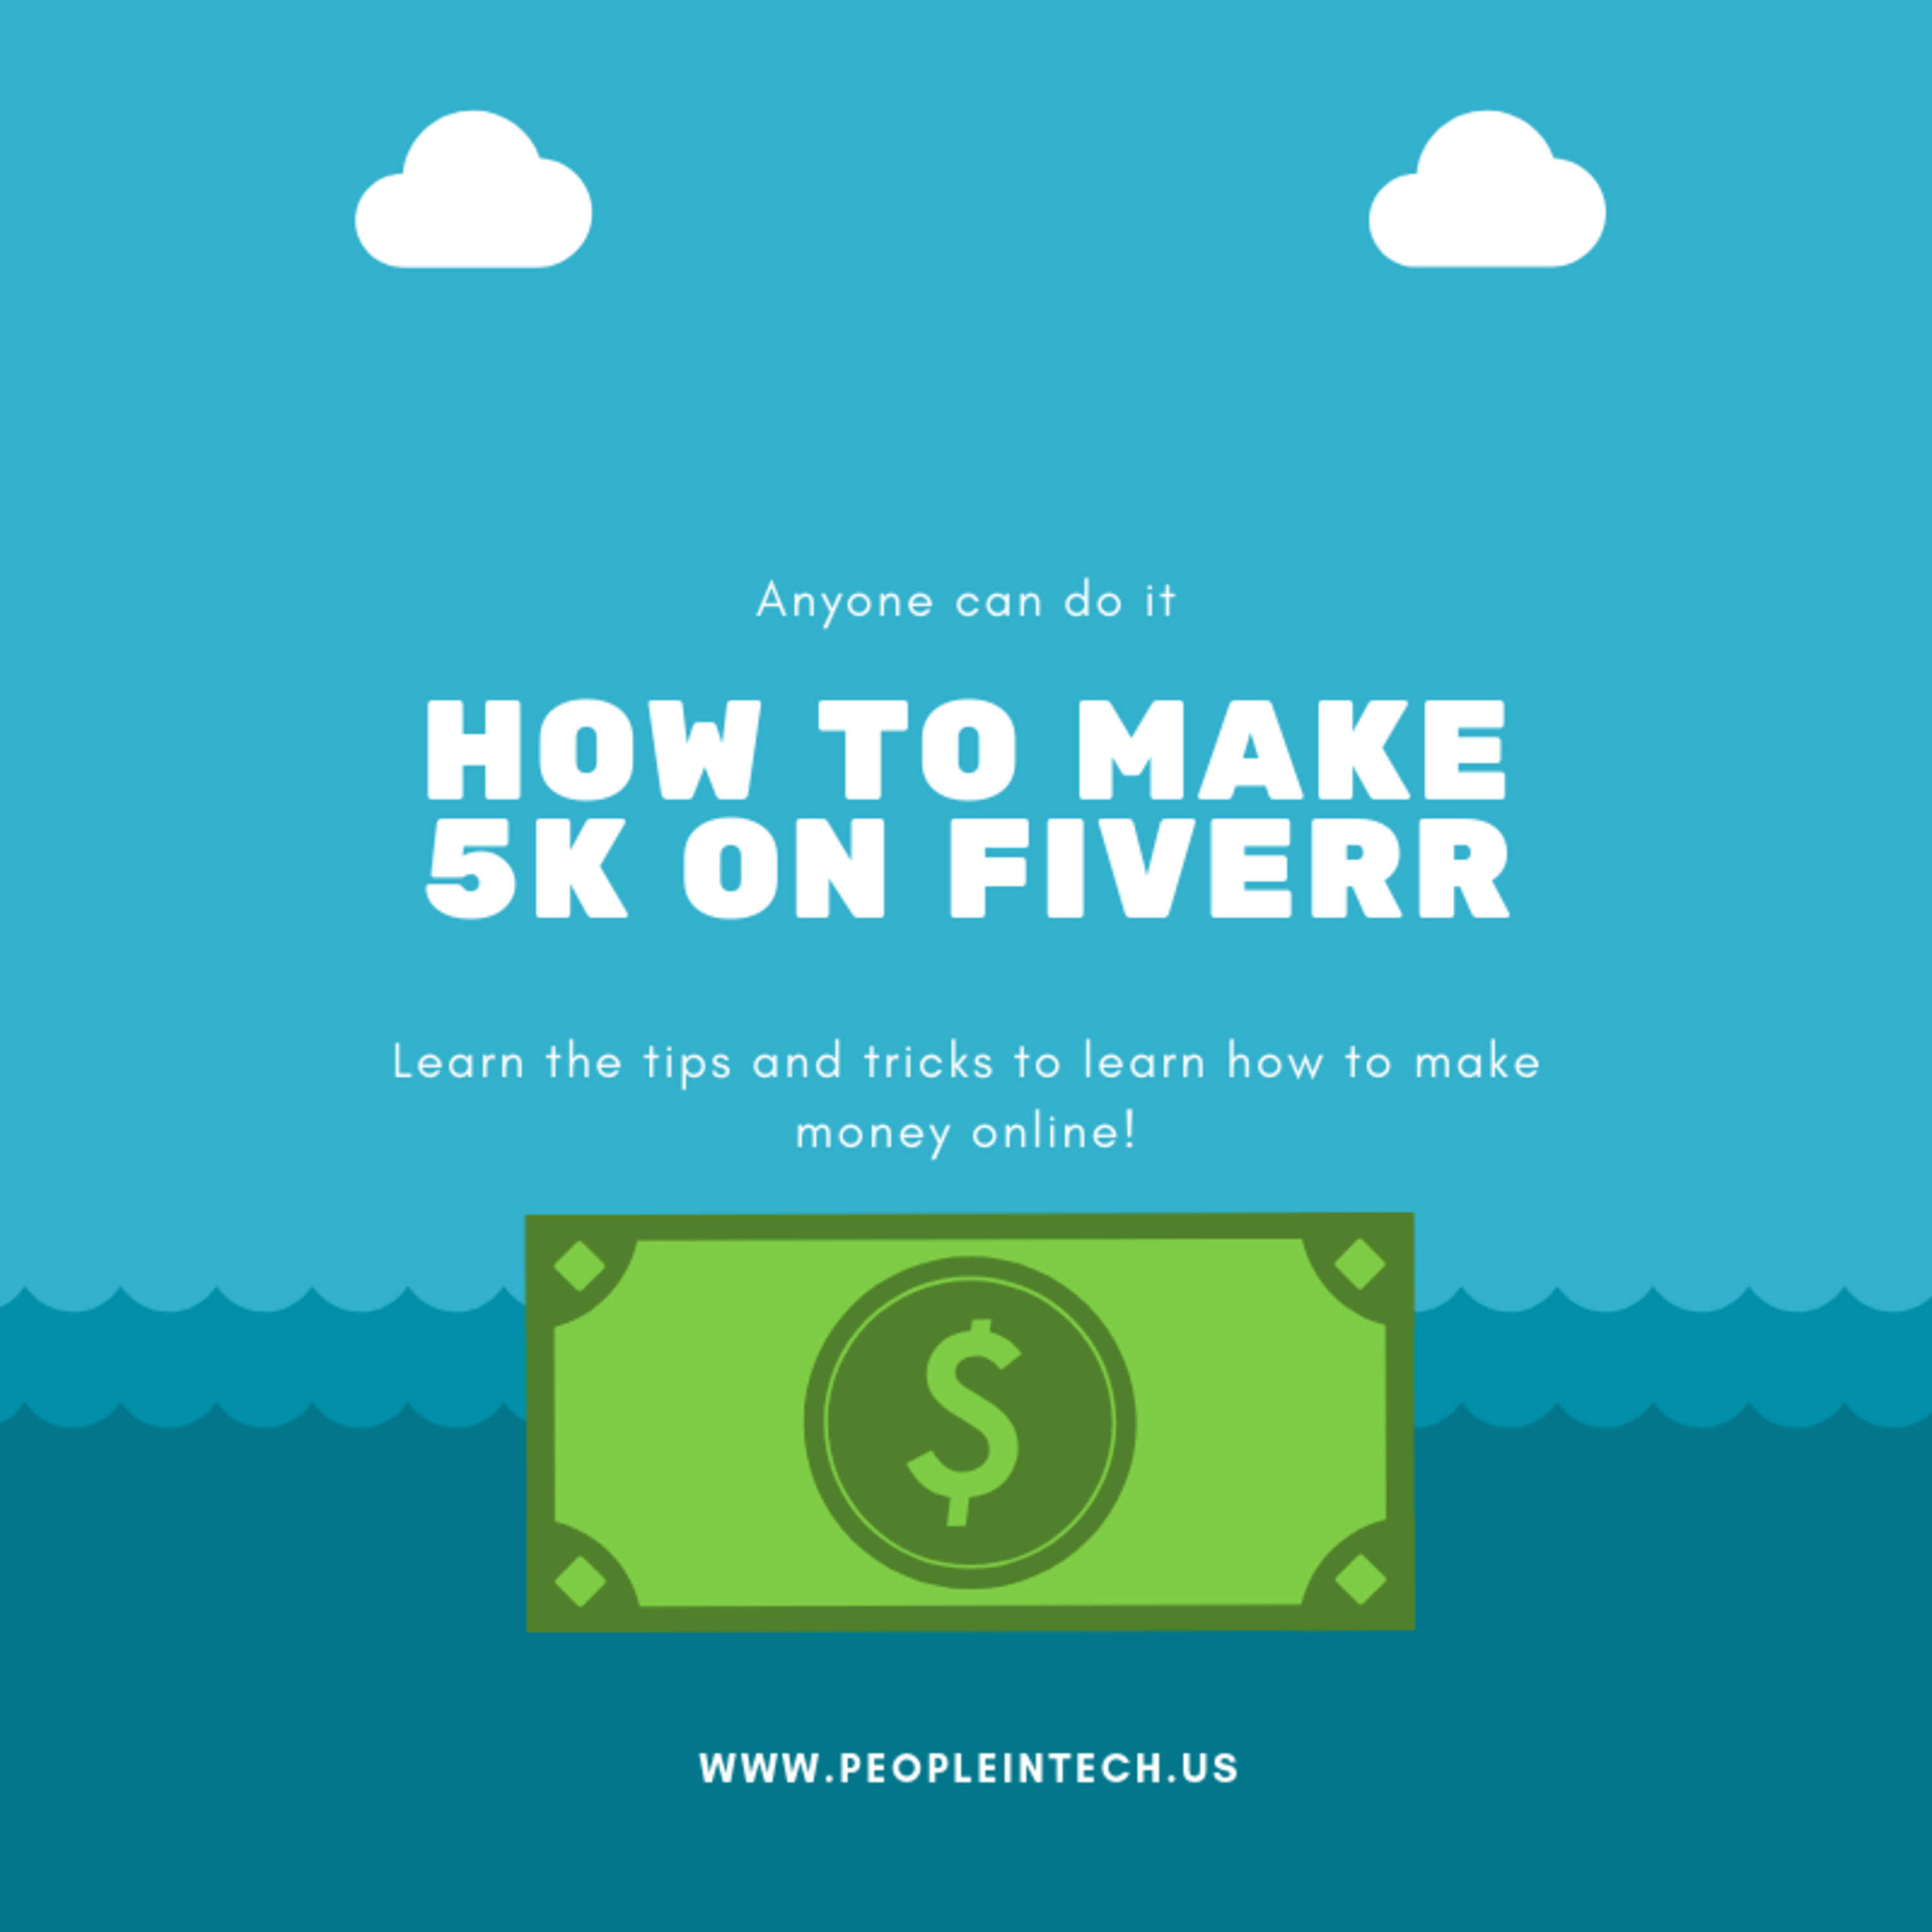 How to make 5K on Fiverr - 08/14/19